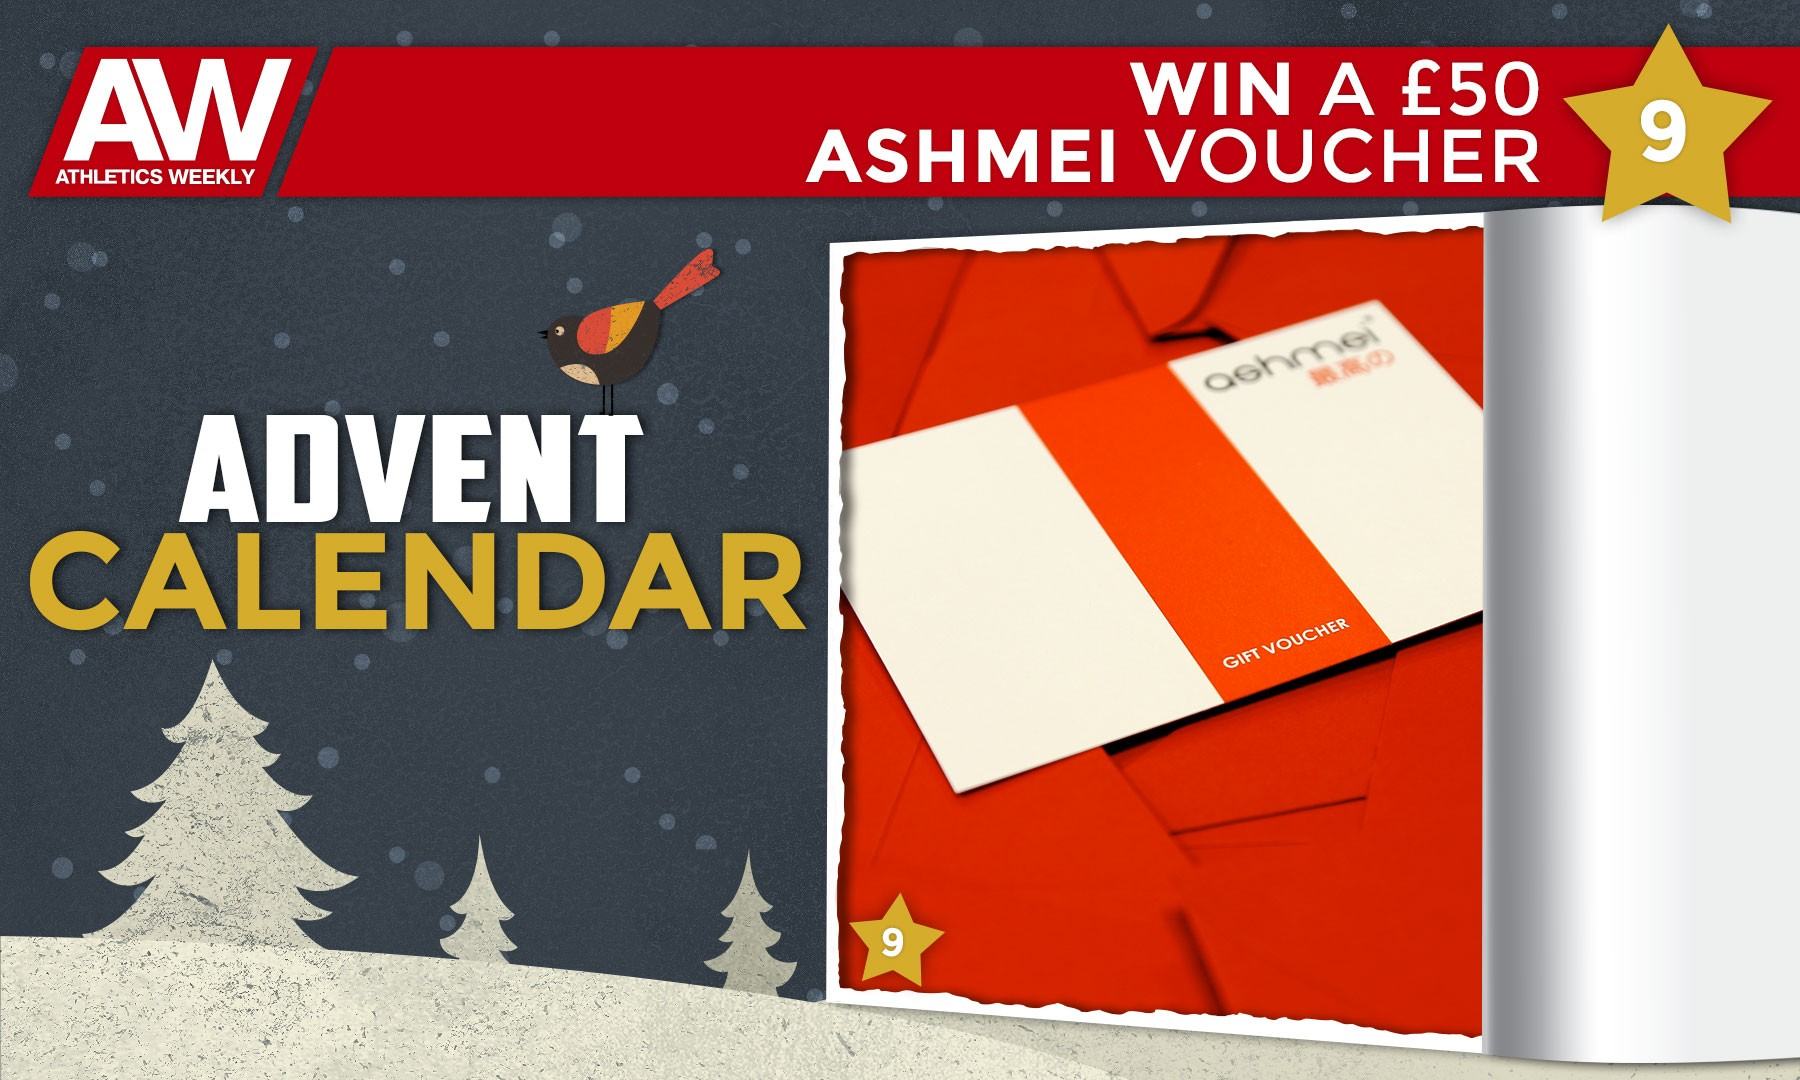 Win an ashmei voucher